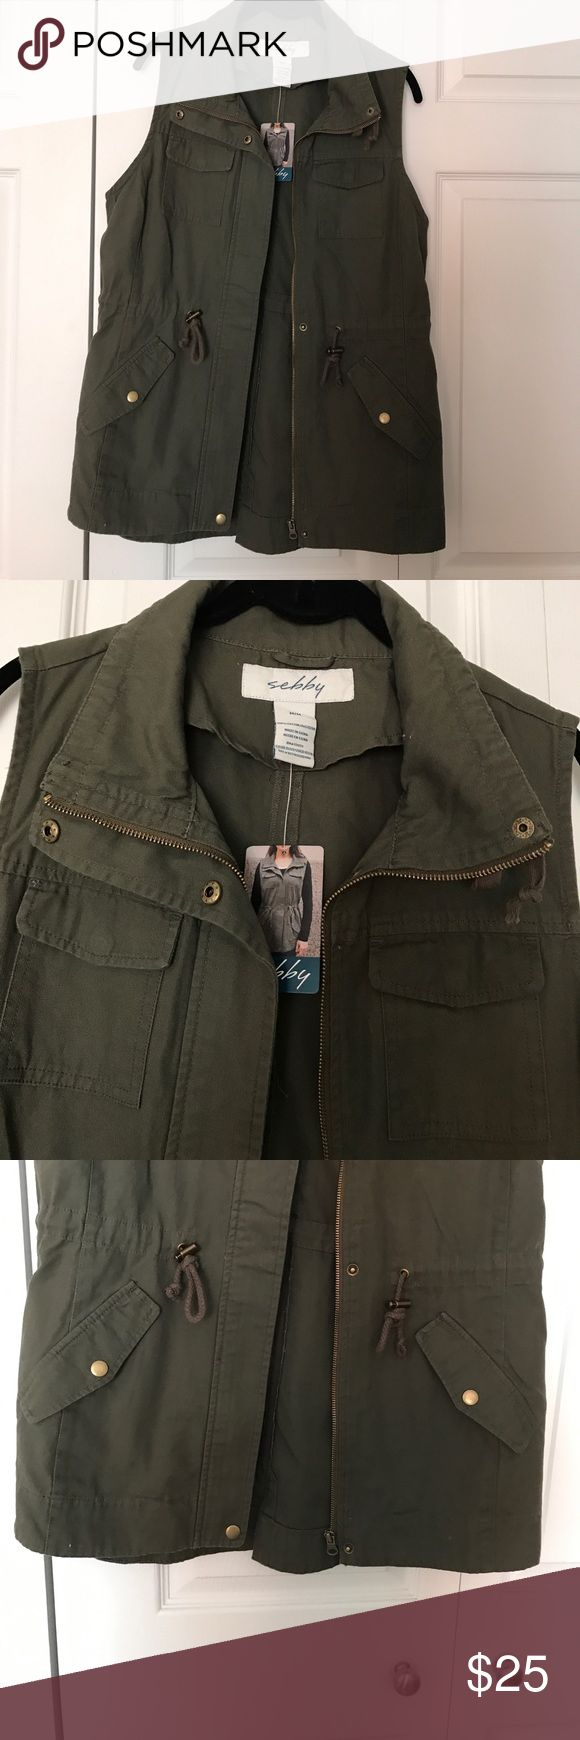 Zip up vest NWT women's zip up all of green vest size medium. Could possibly fit a size large Jackets & Coats Vests